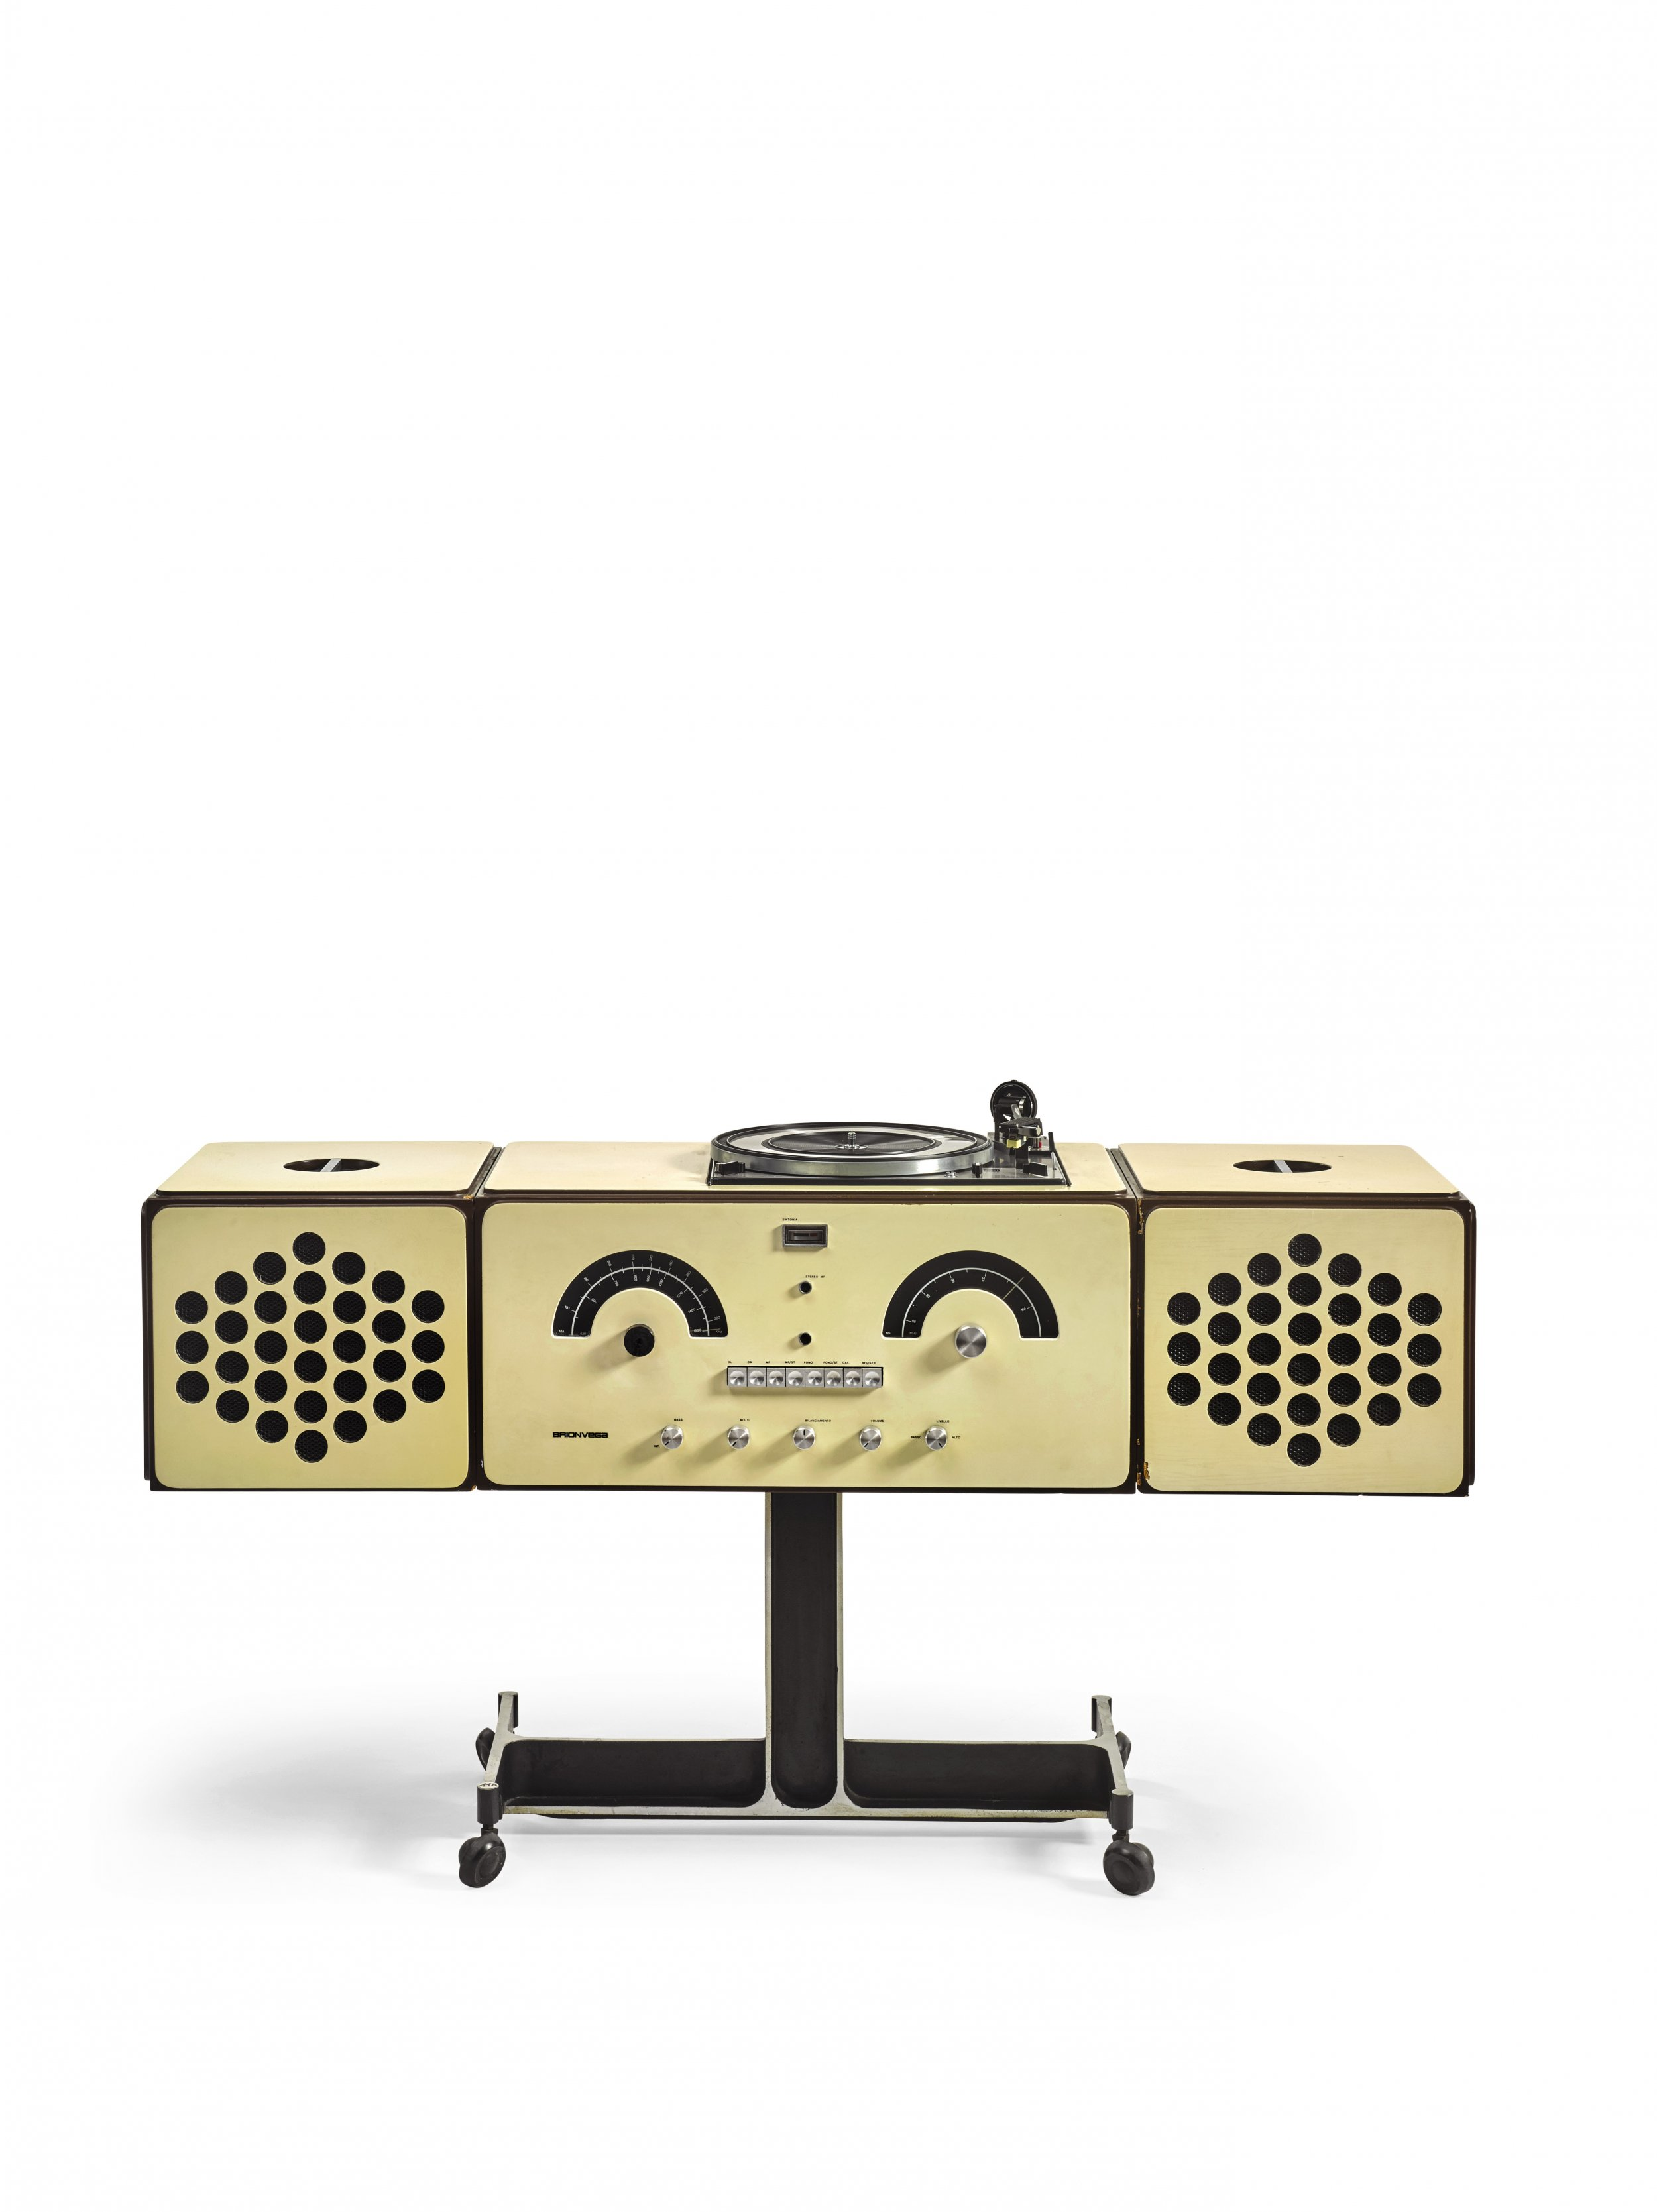 David Bowie's personal record player